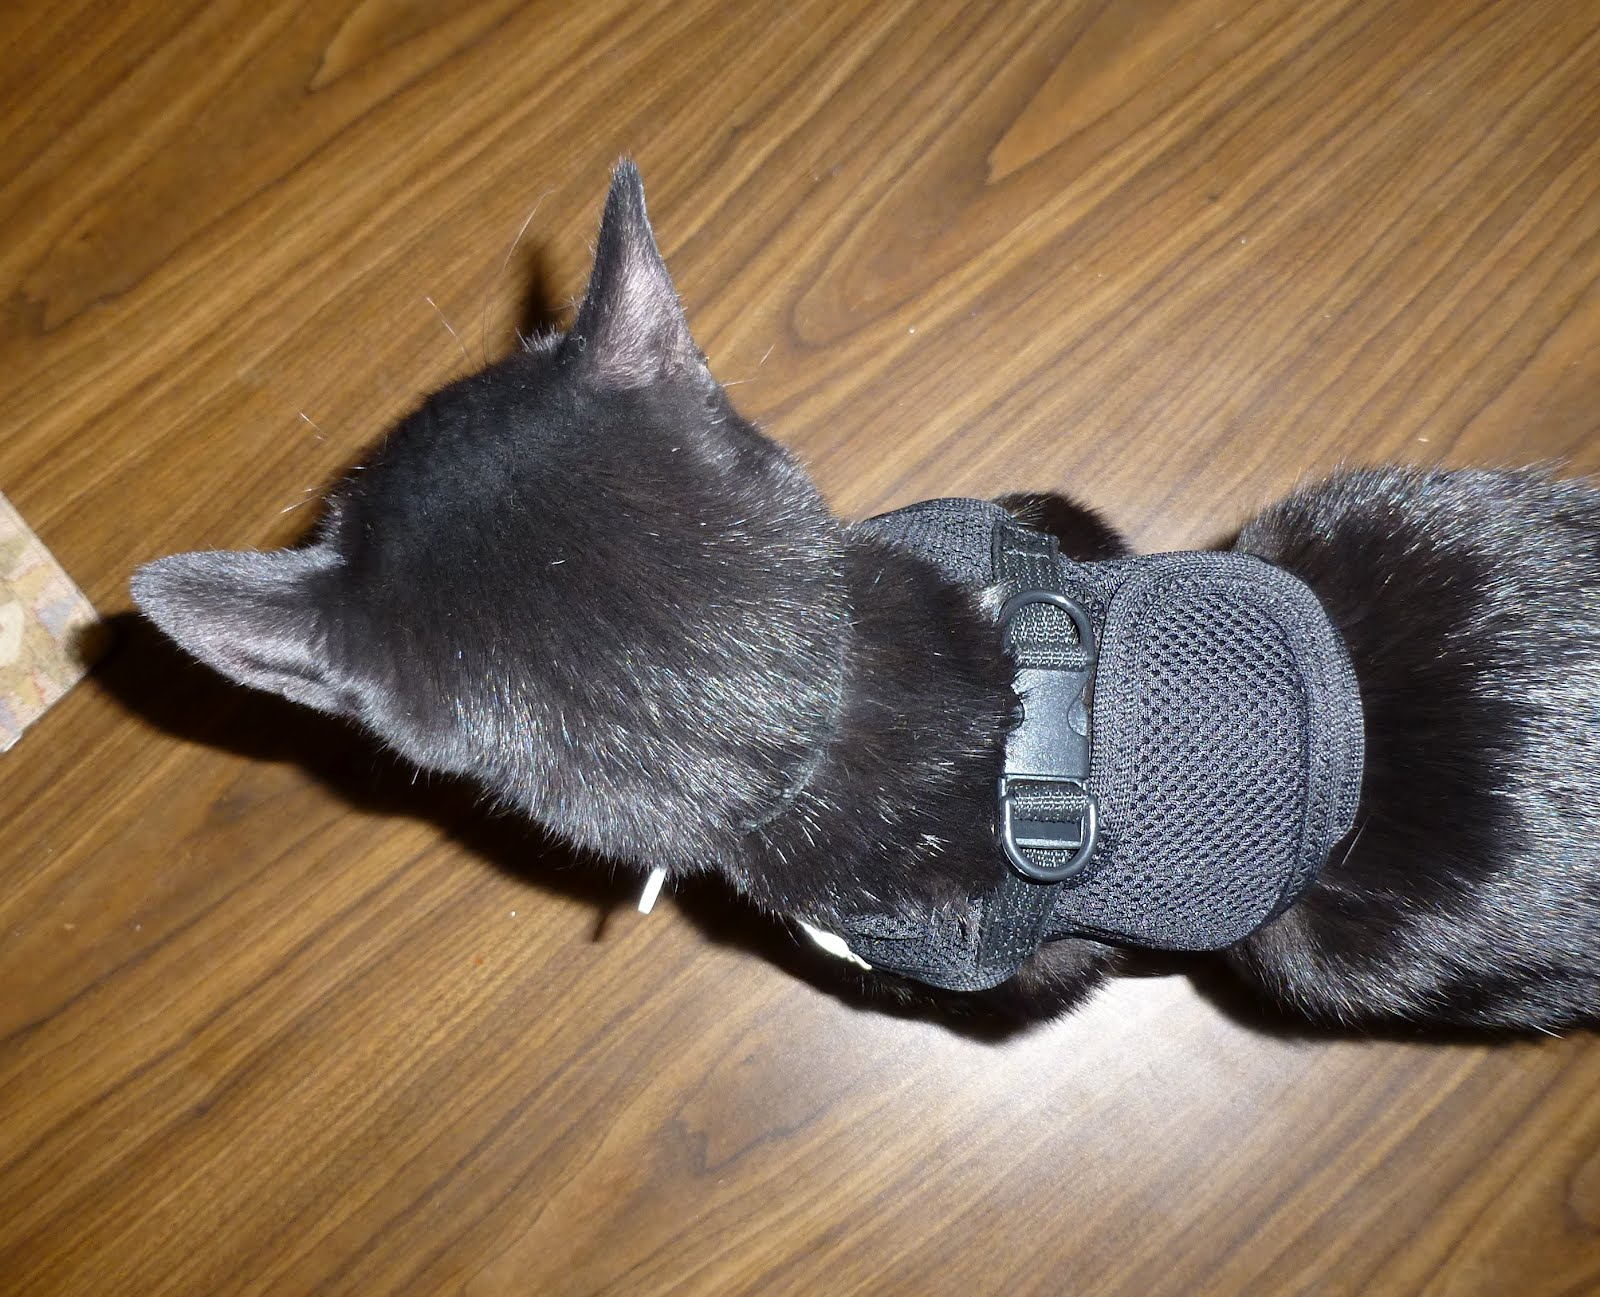 how to get a harness on a cat